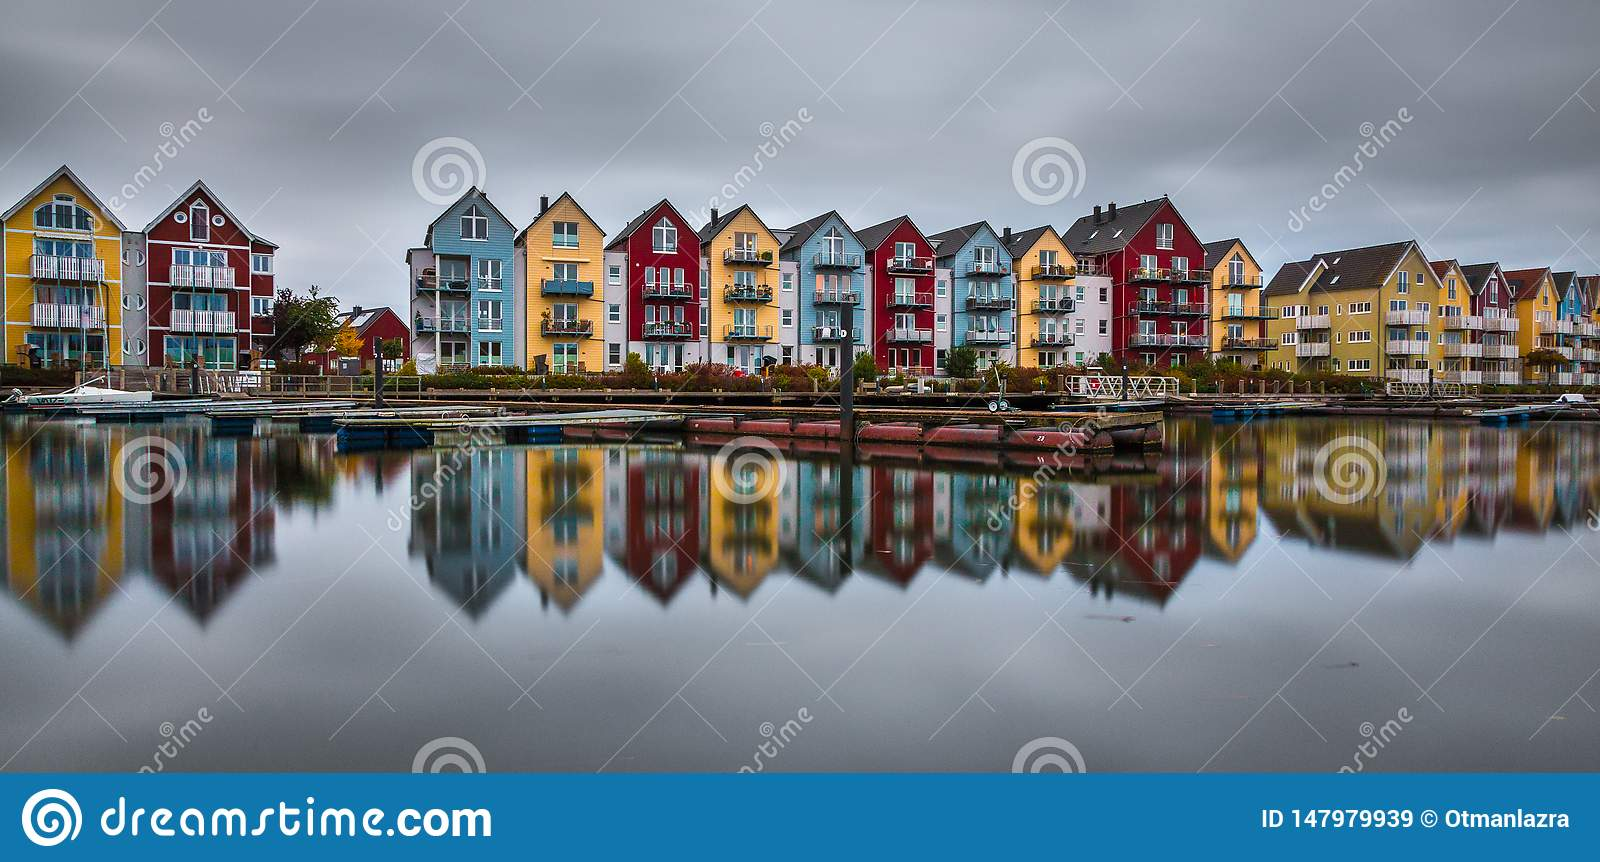 houses at the river Ryck in Greifswald